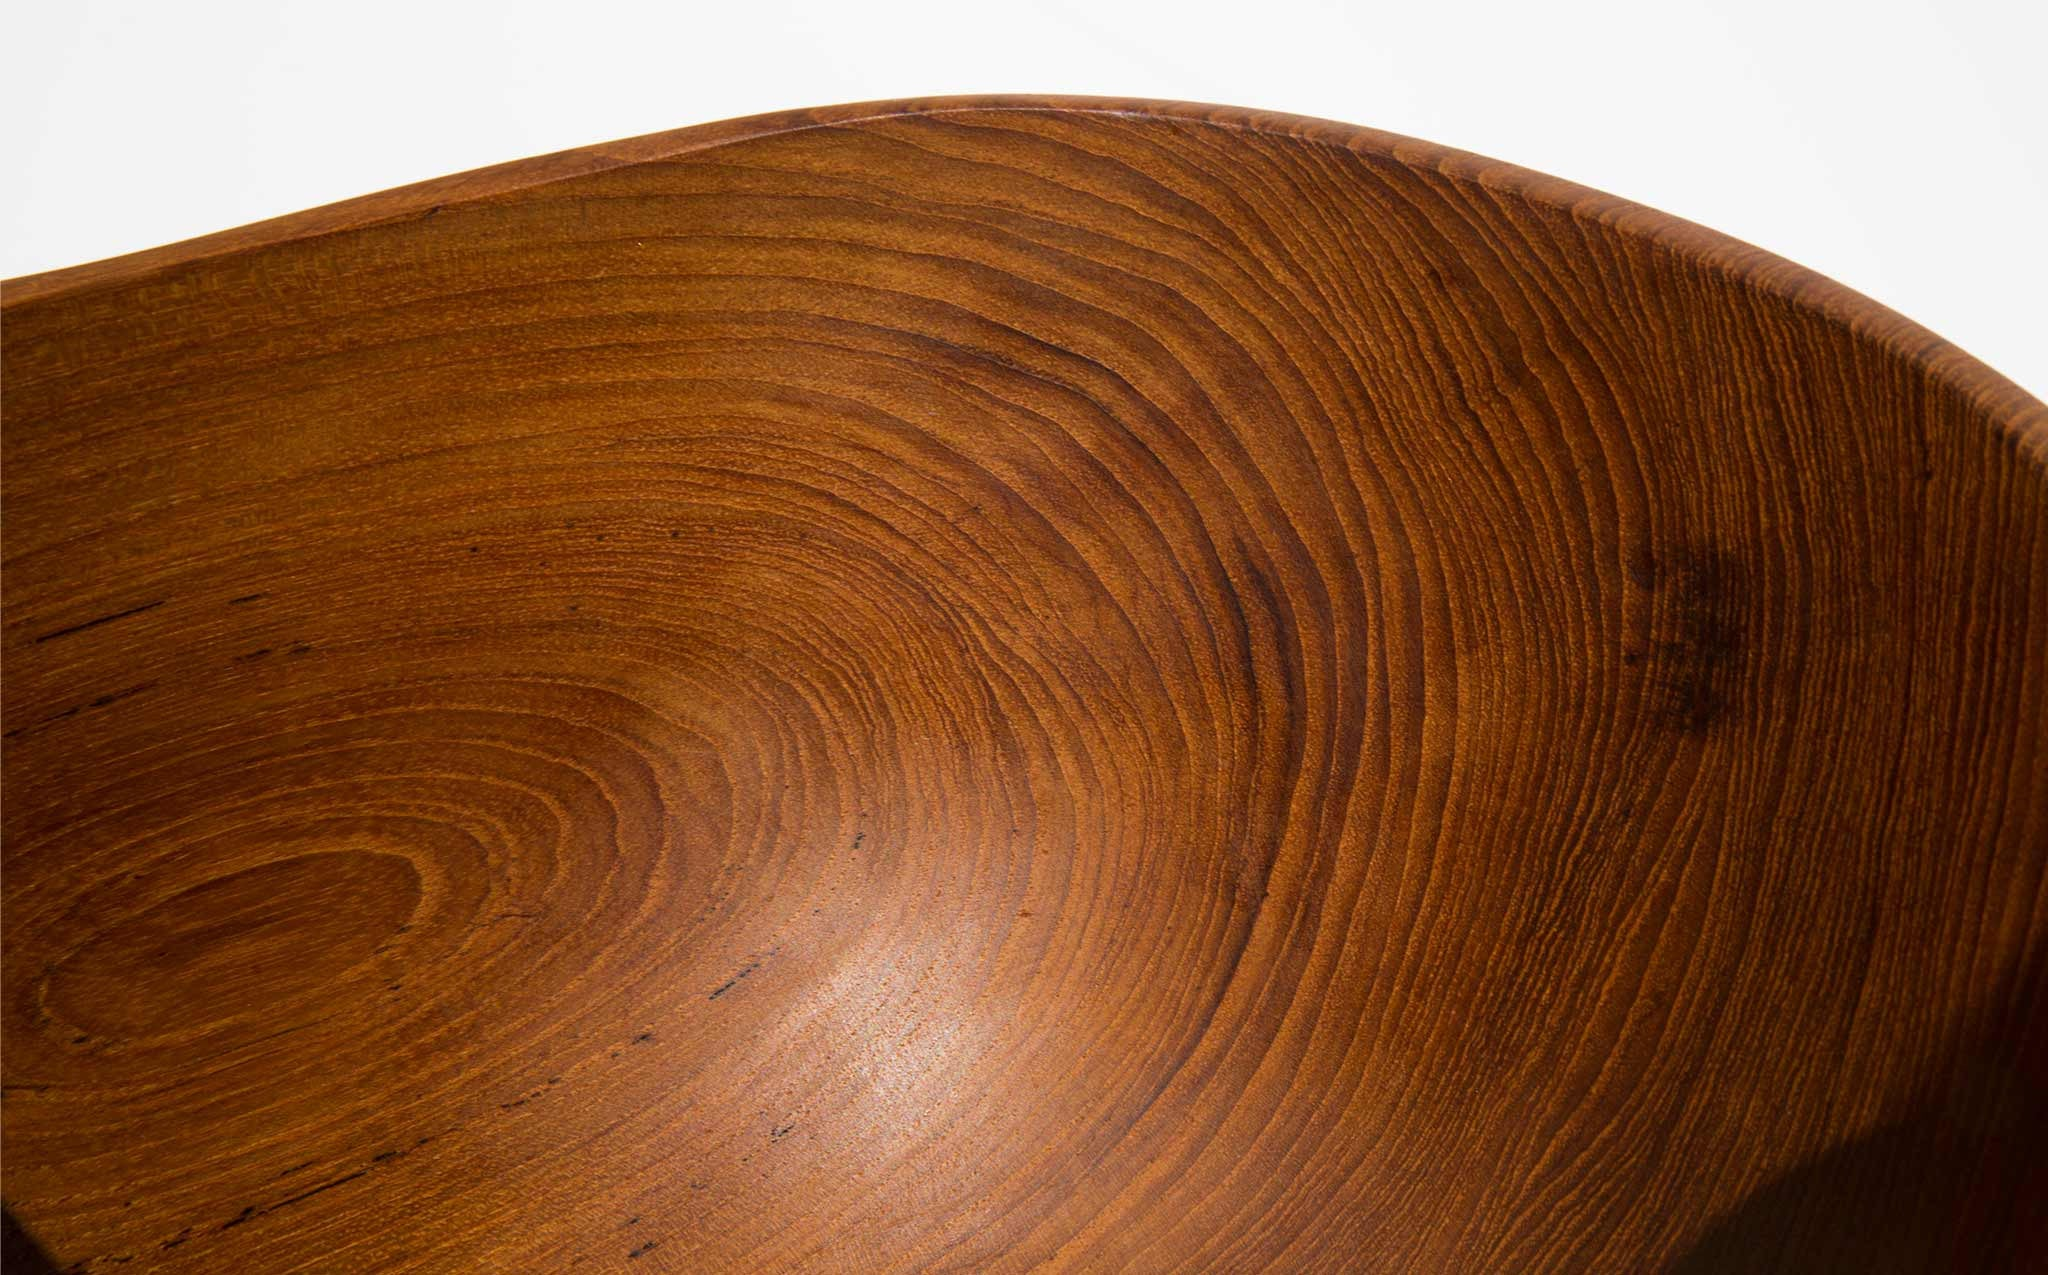 solid teak bowl in the style of Finn Juhl